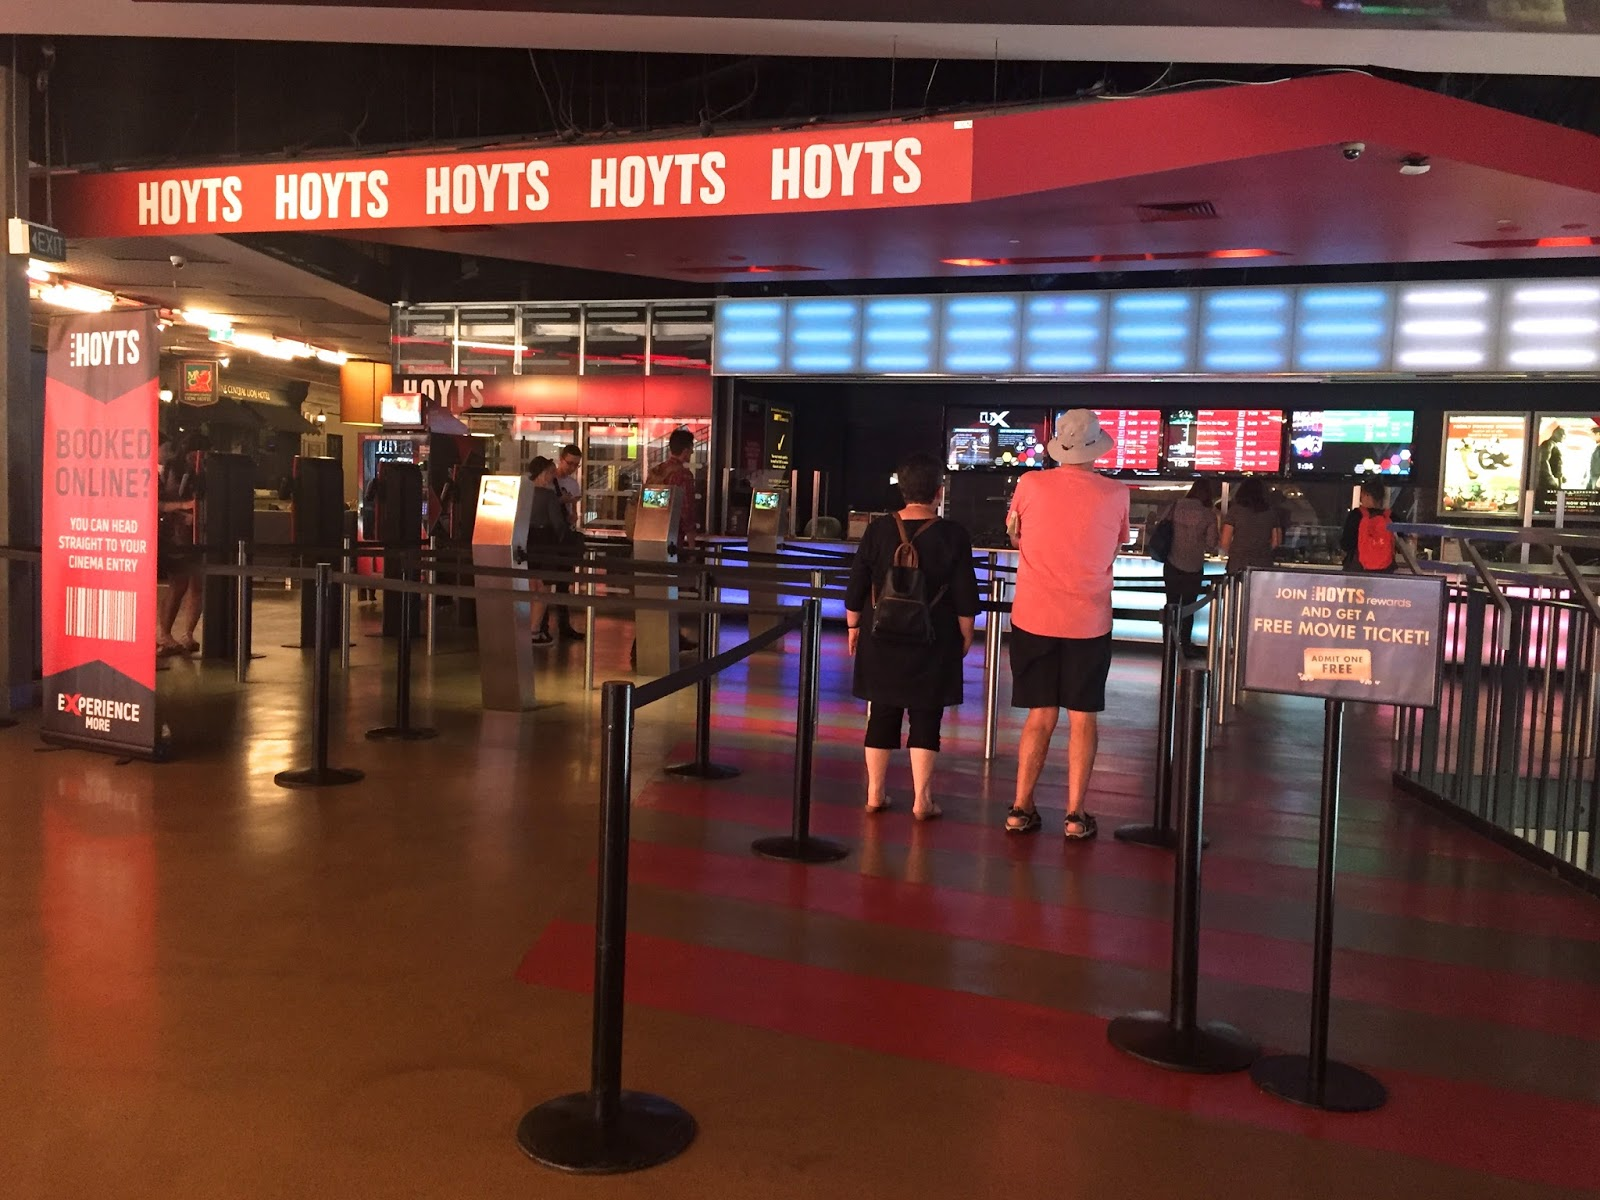 Hoyts melbourne central our times dating. song ji hyo and joong ki dating site.